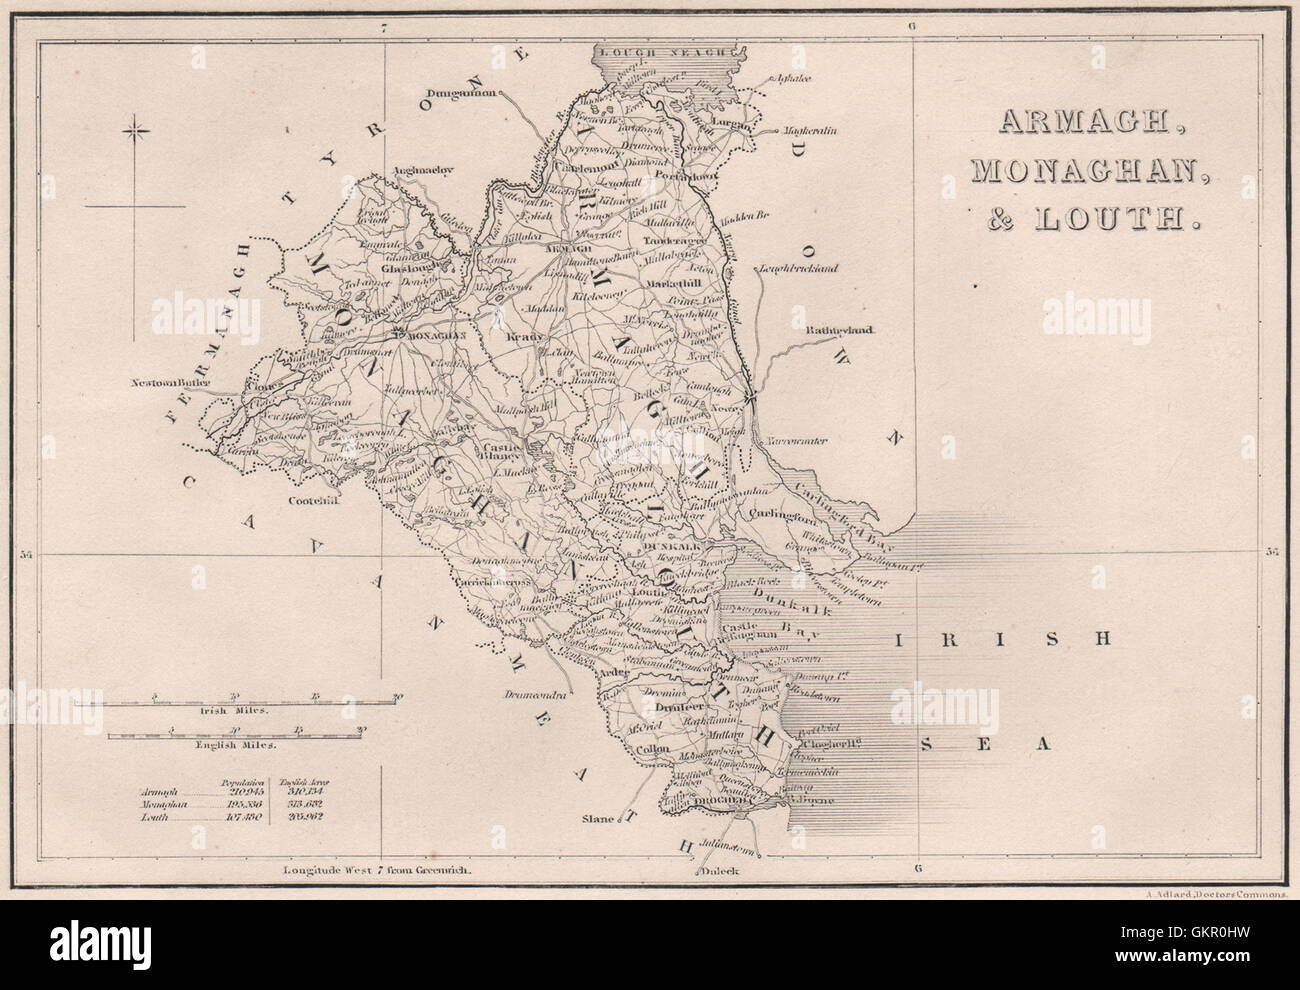 County Armagh Ireland Map.County Armagh County Monaghan County Louth Ireland 1835 Antique